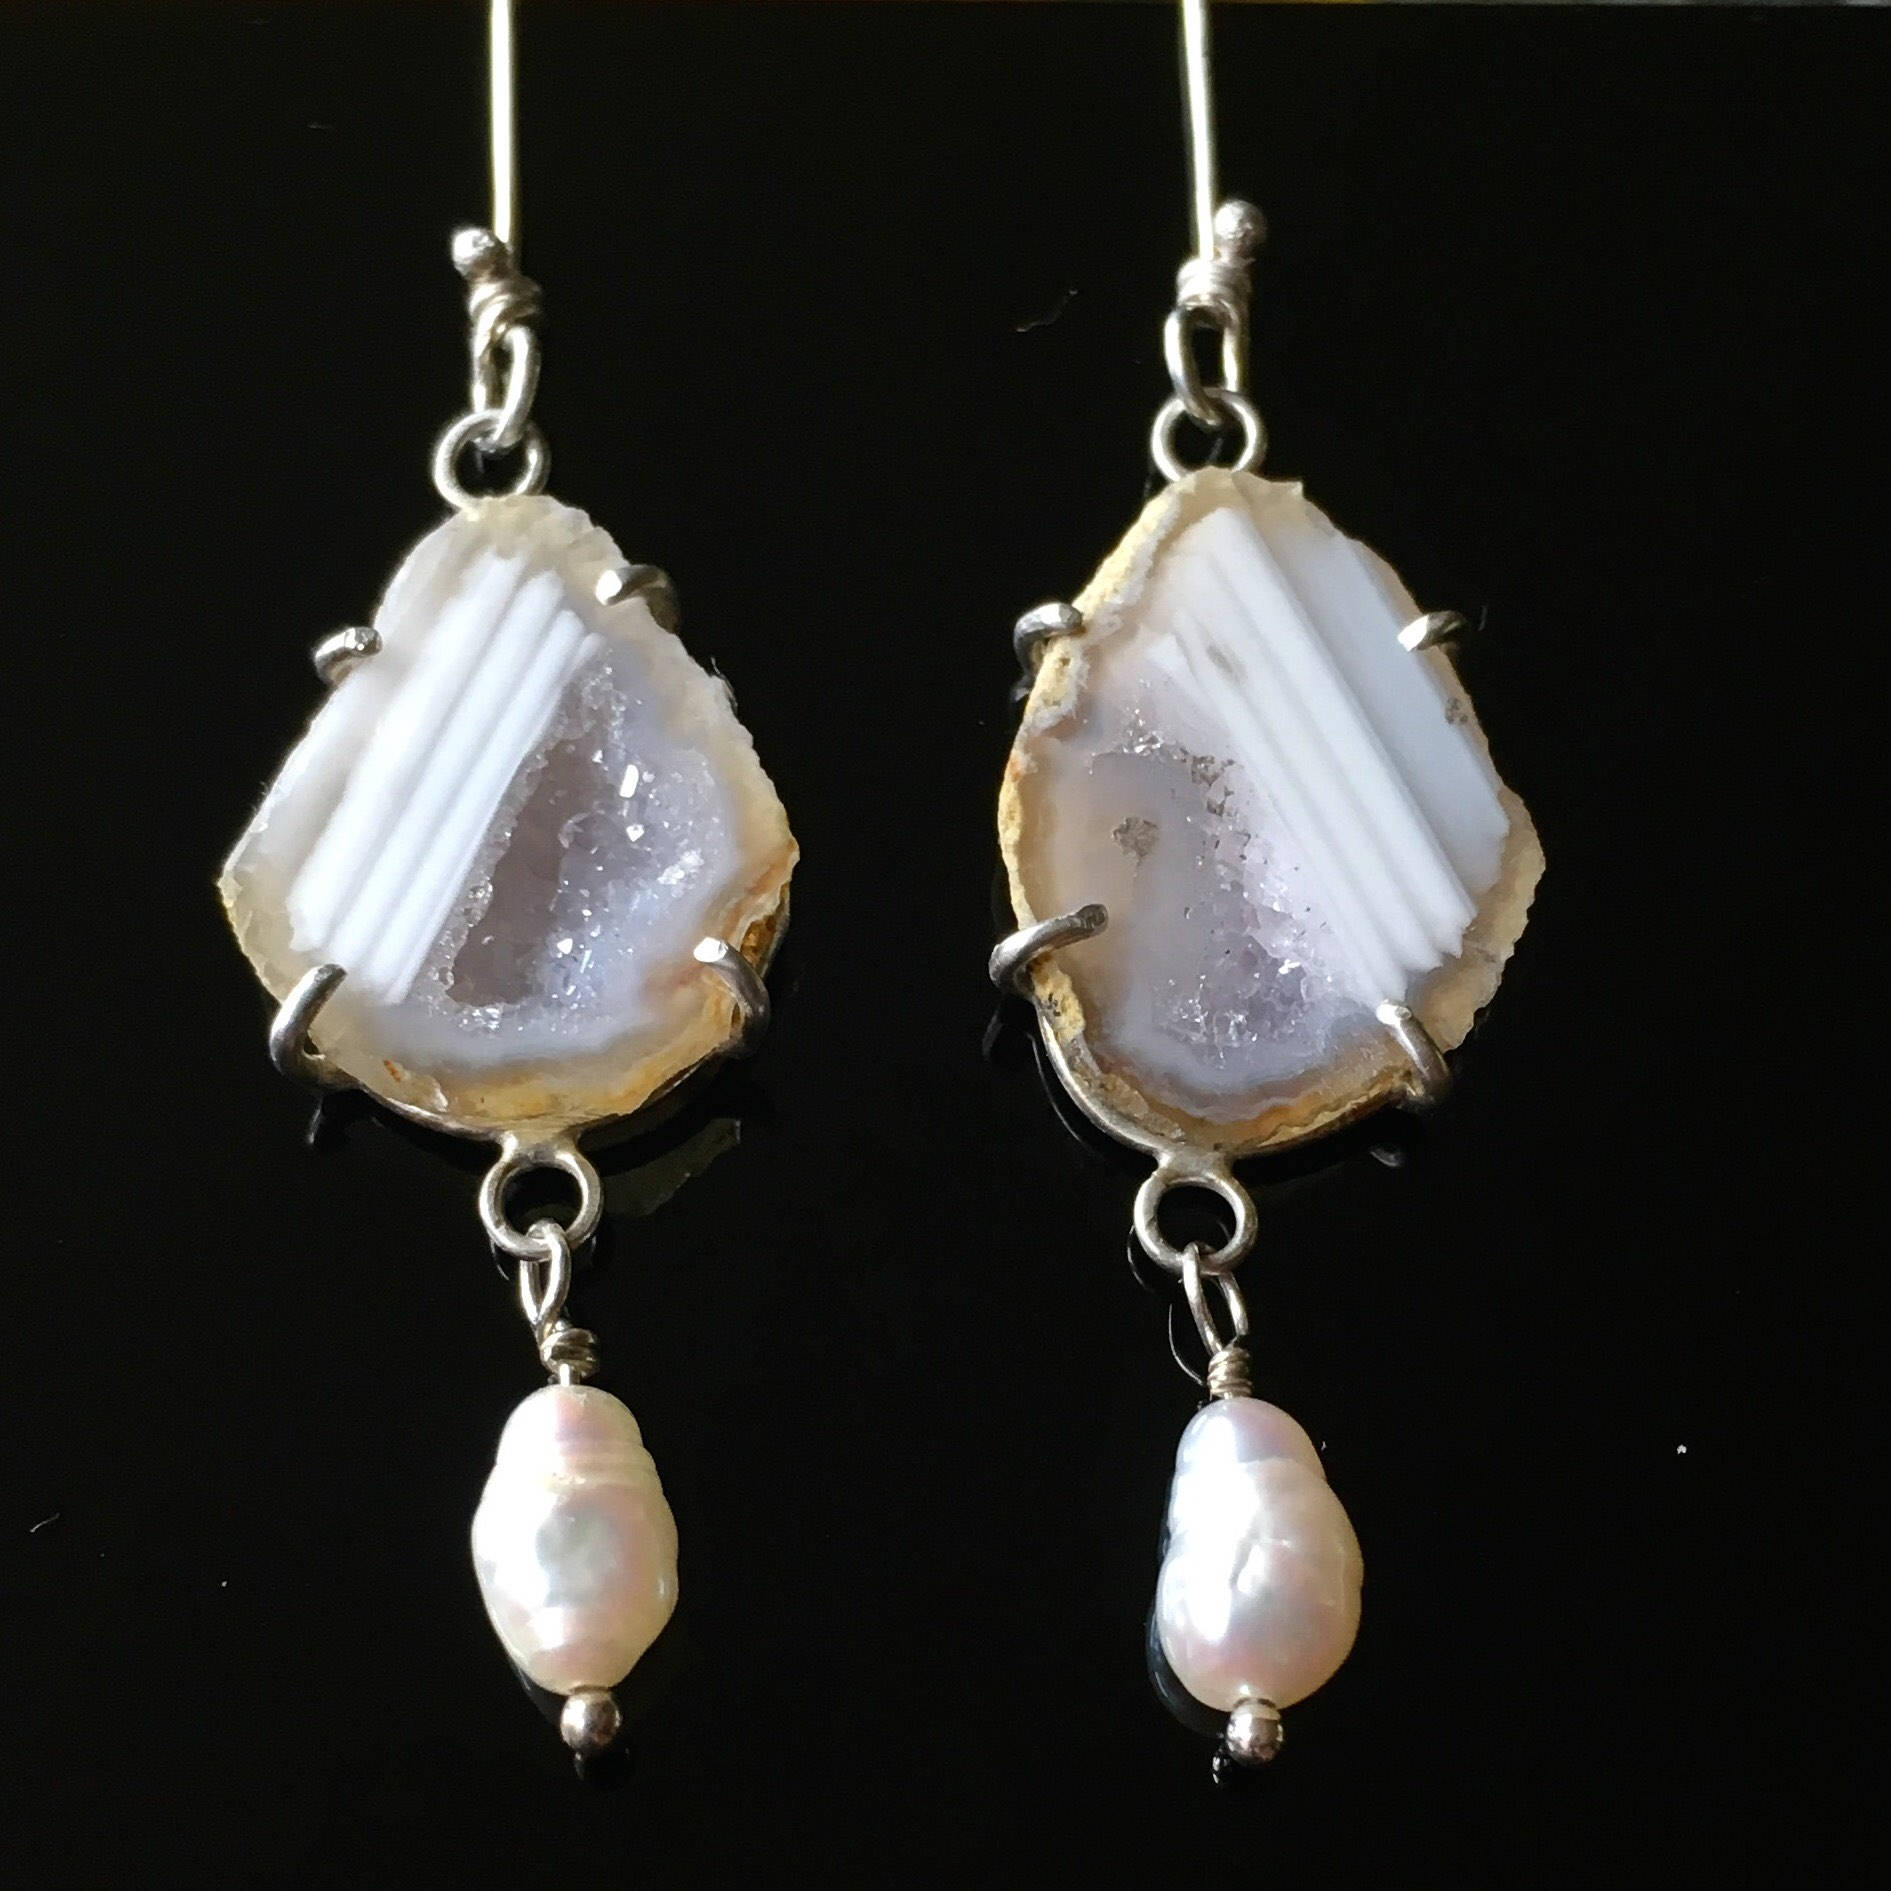 White Geodes with Pearls